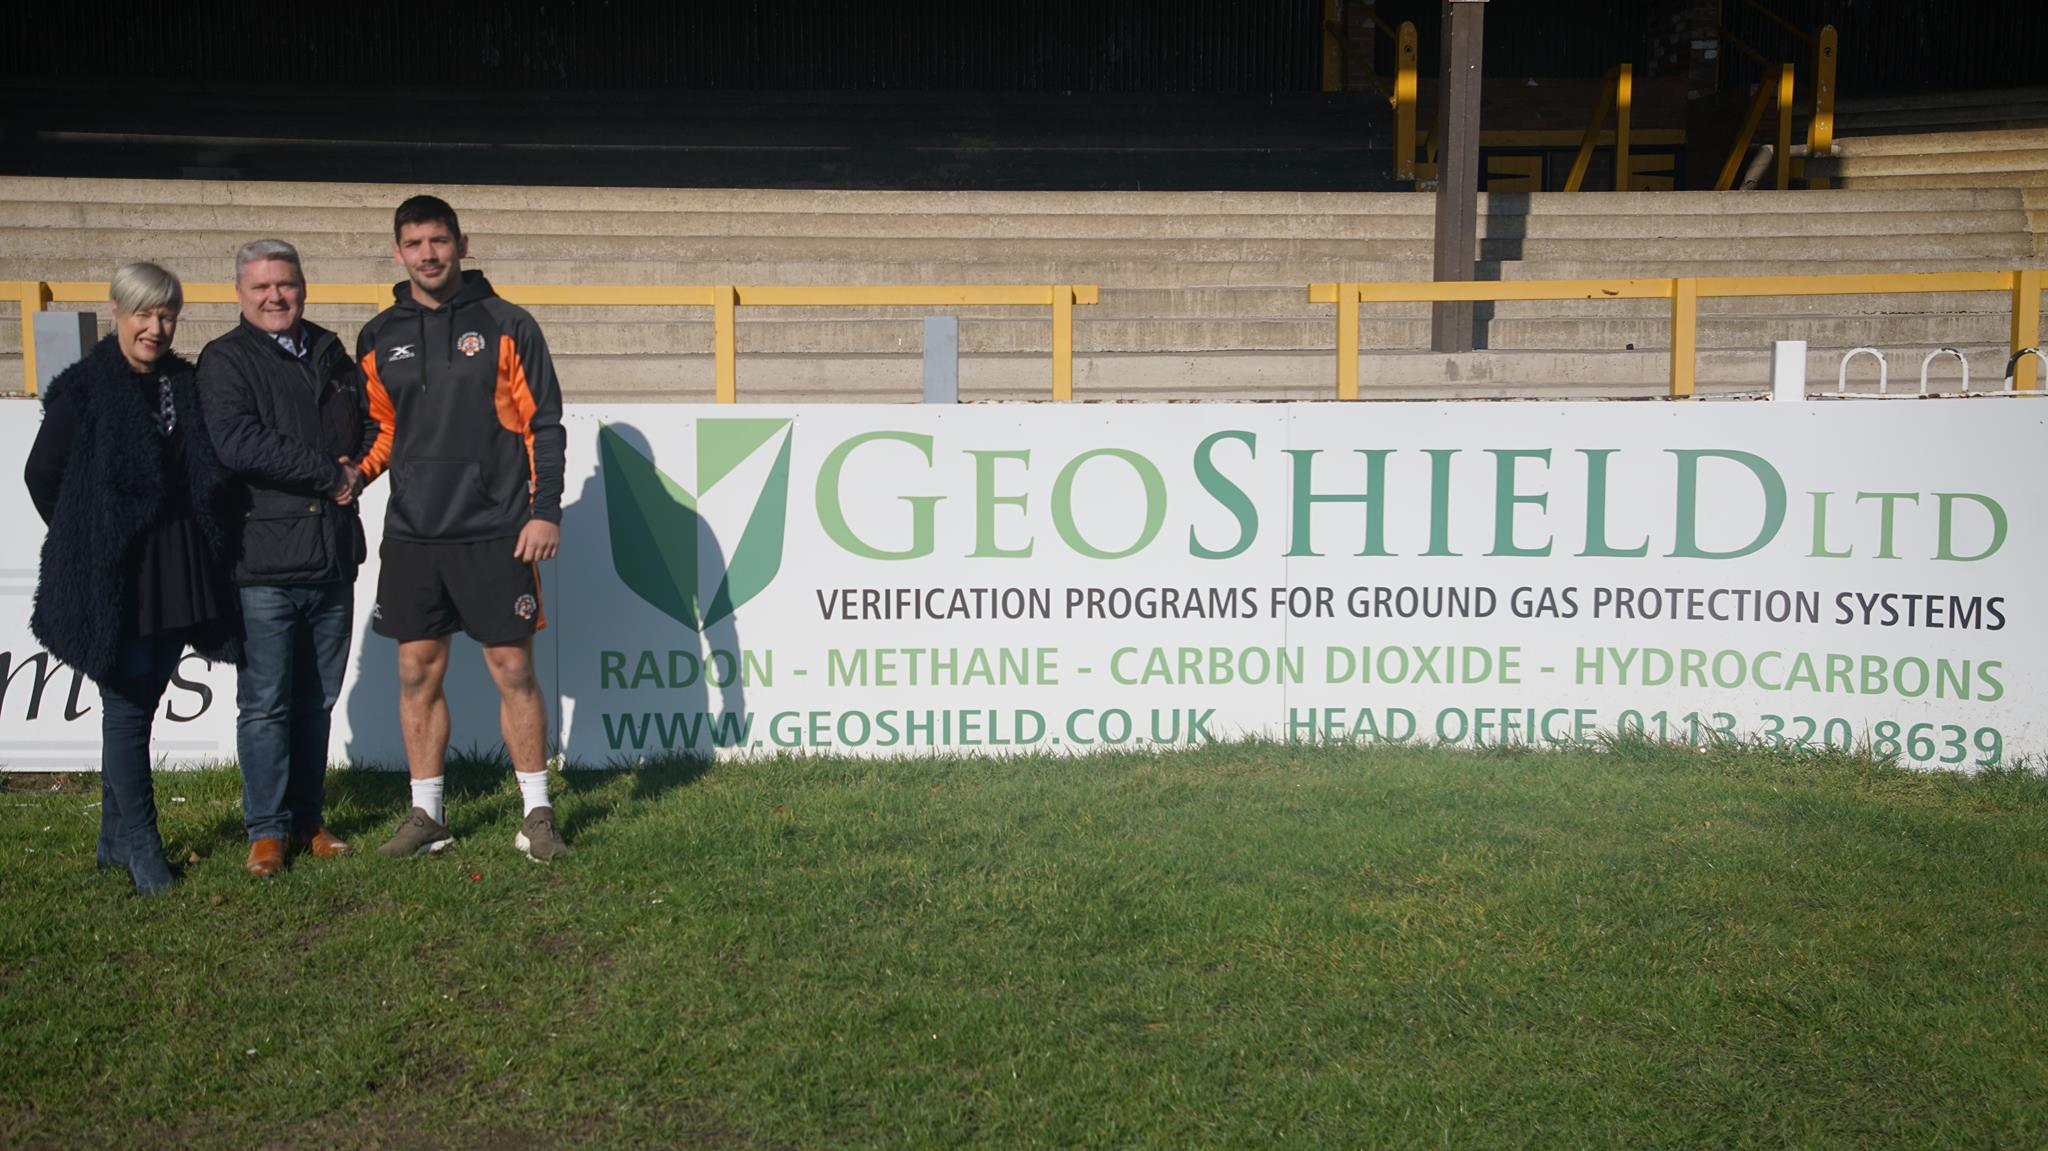 GeoShield sponsor Castleford Tigers New Squad player Chris Clarkson